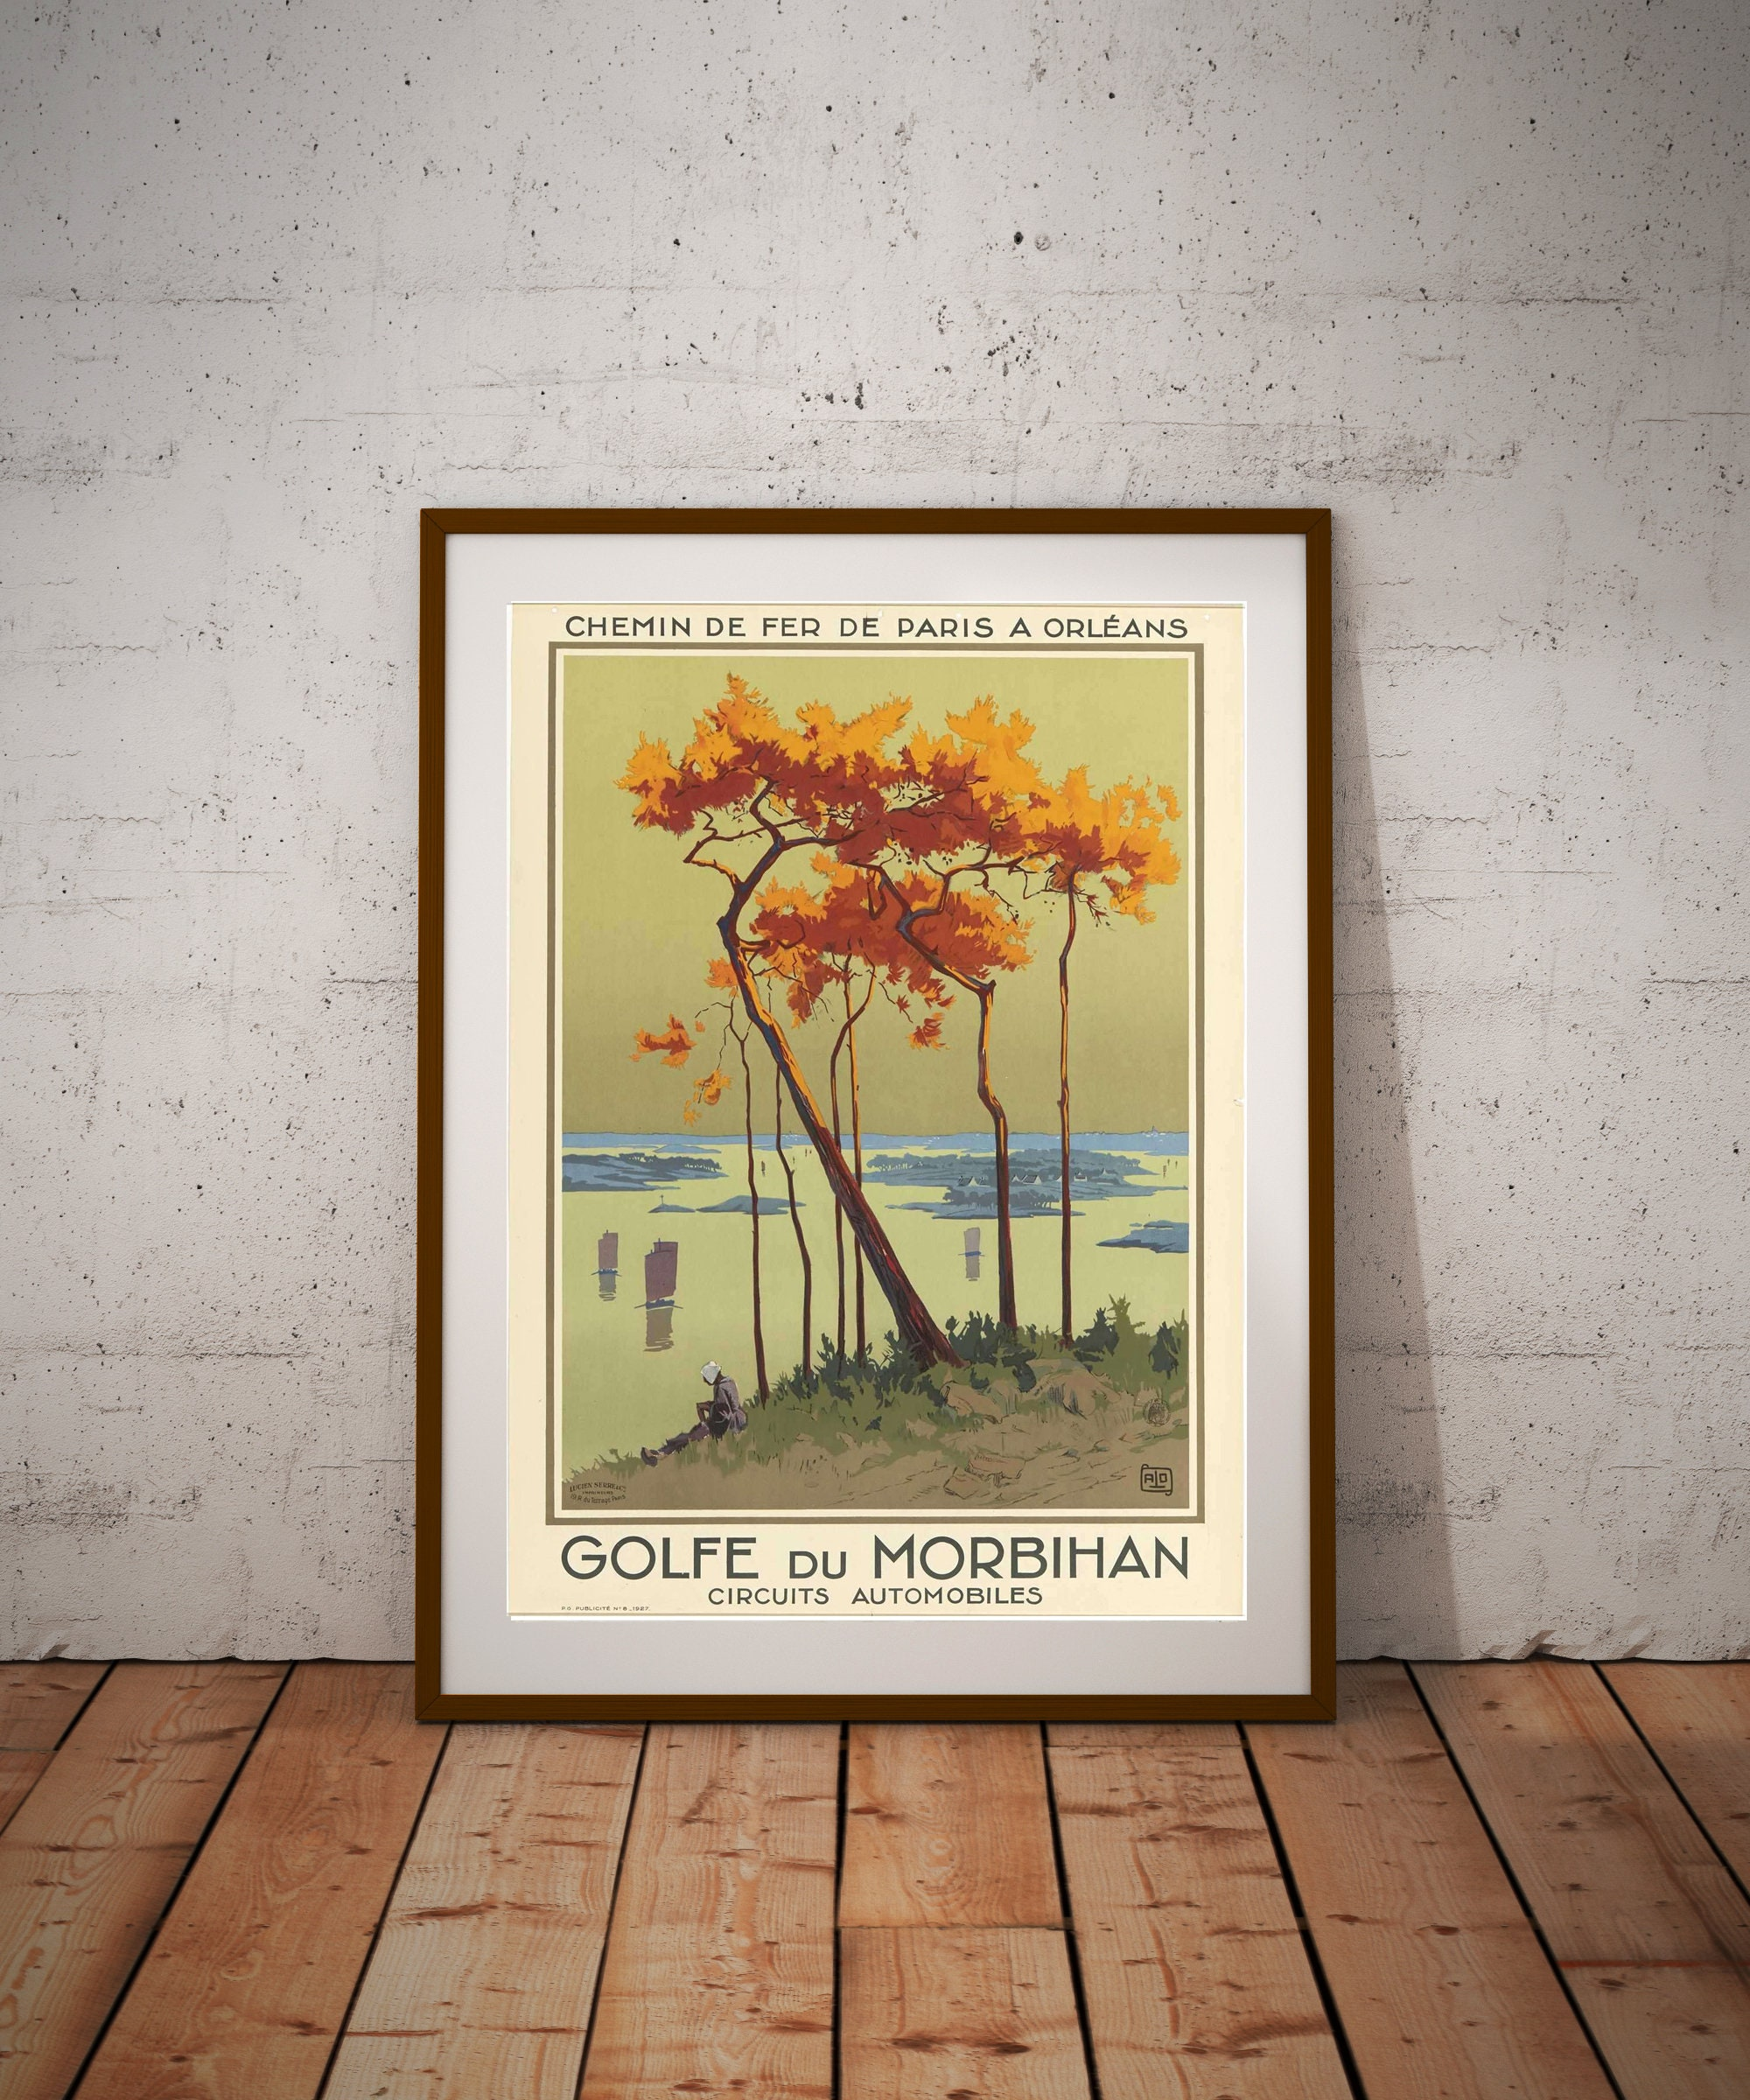 golfe du morhiban vintage travel poster poster sticker or canvas print gift idea christmas gift